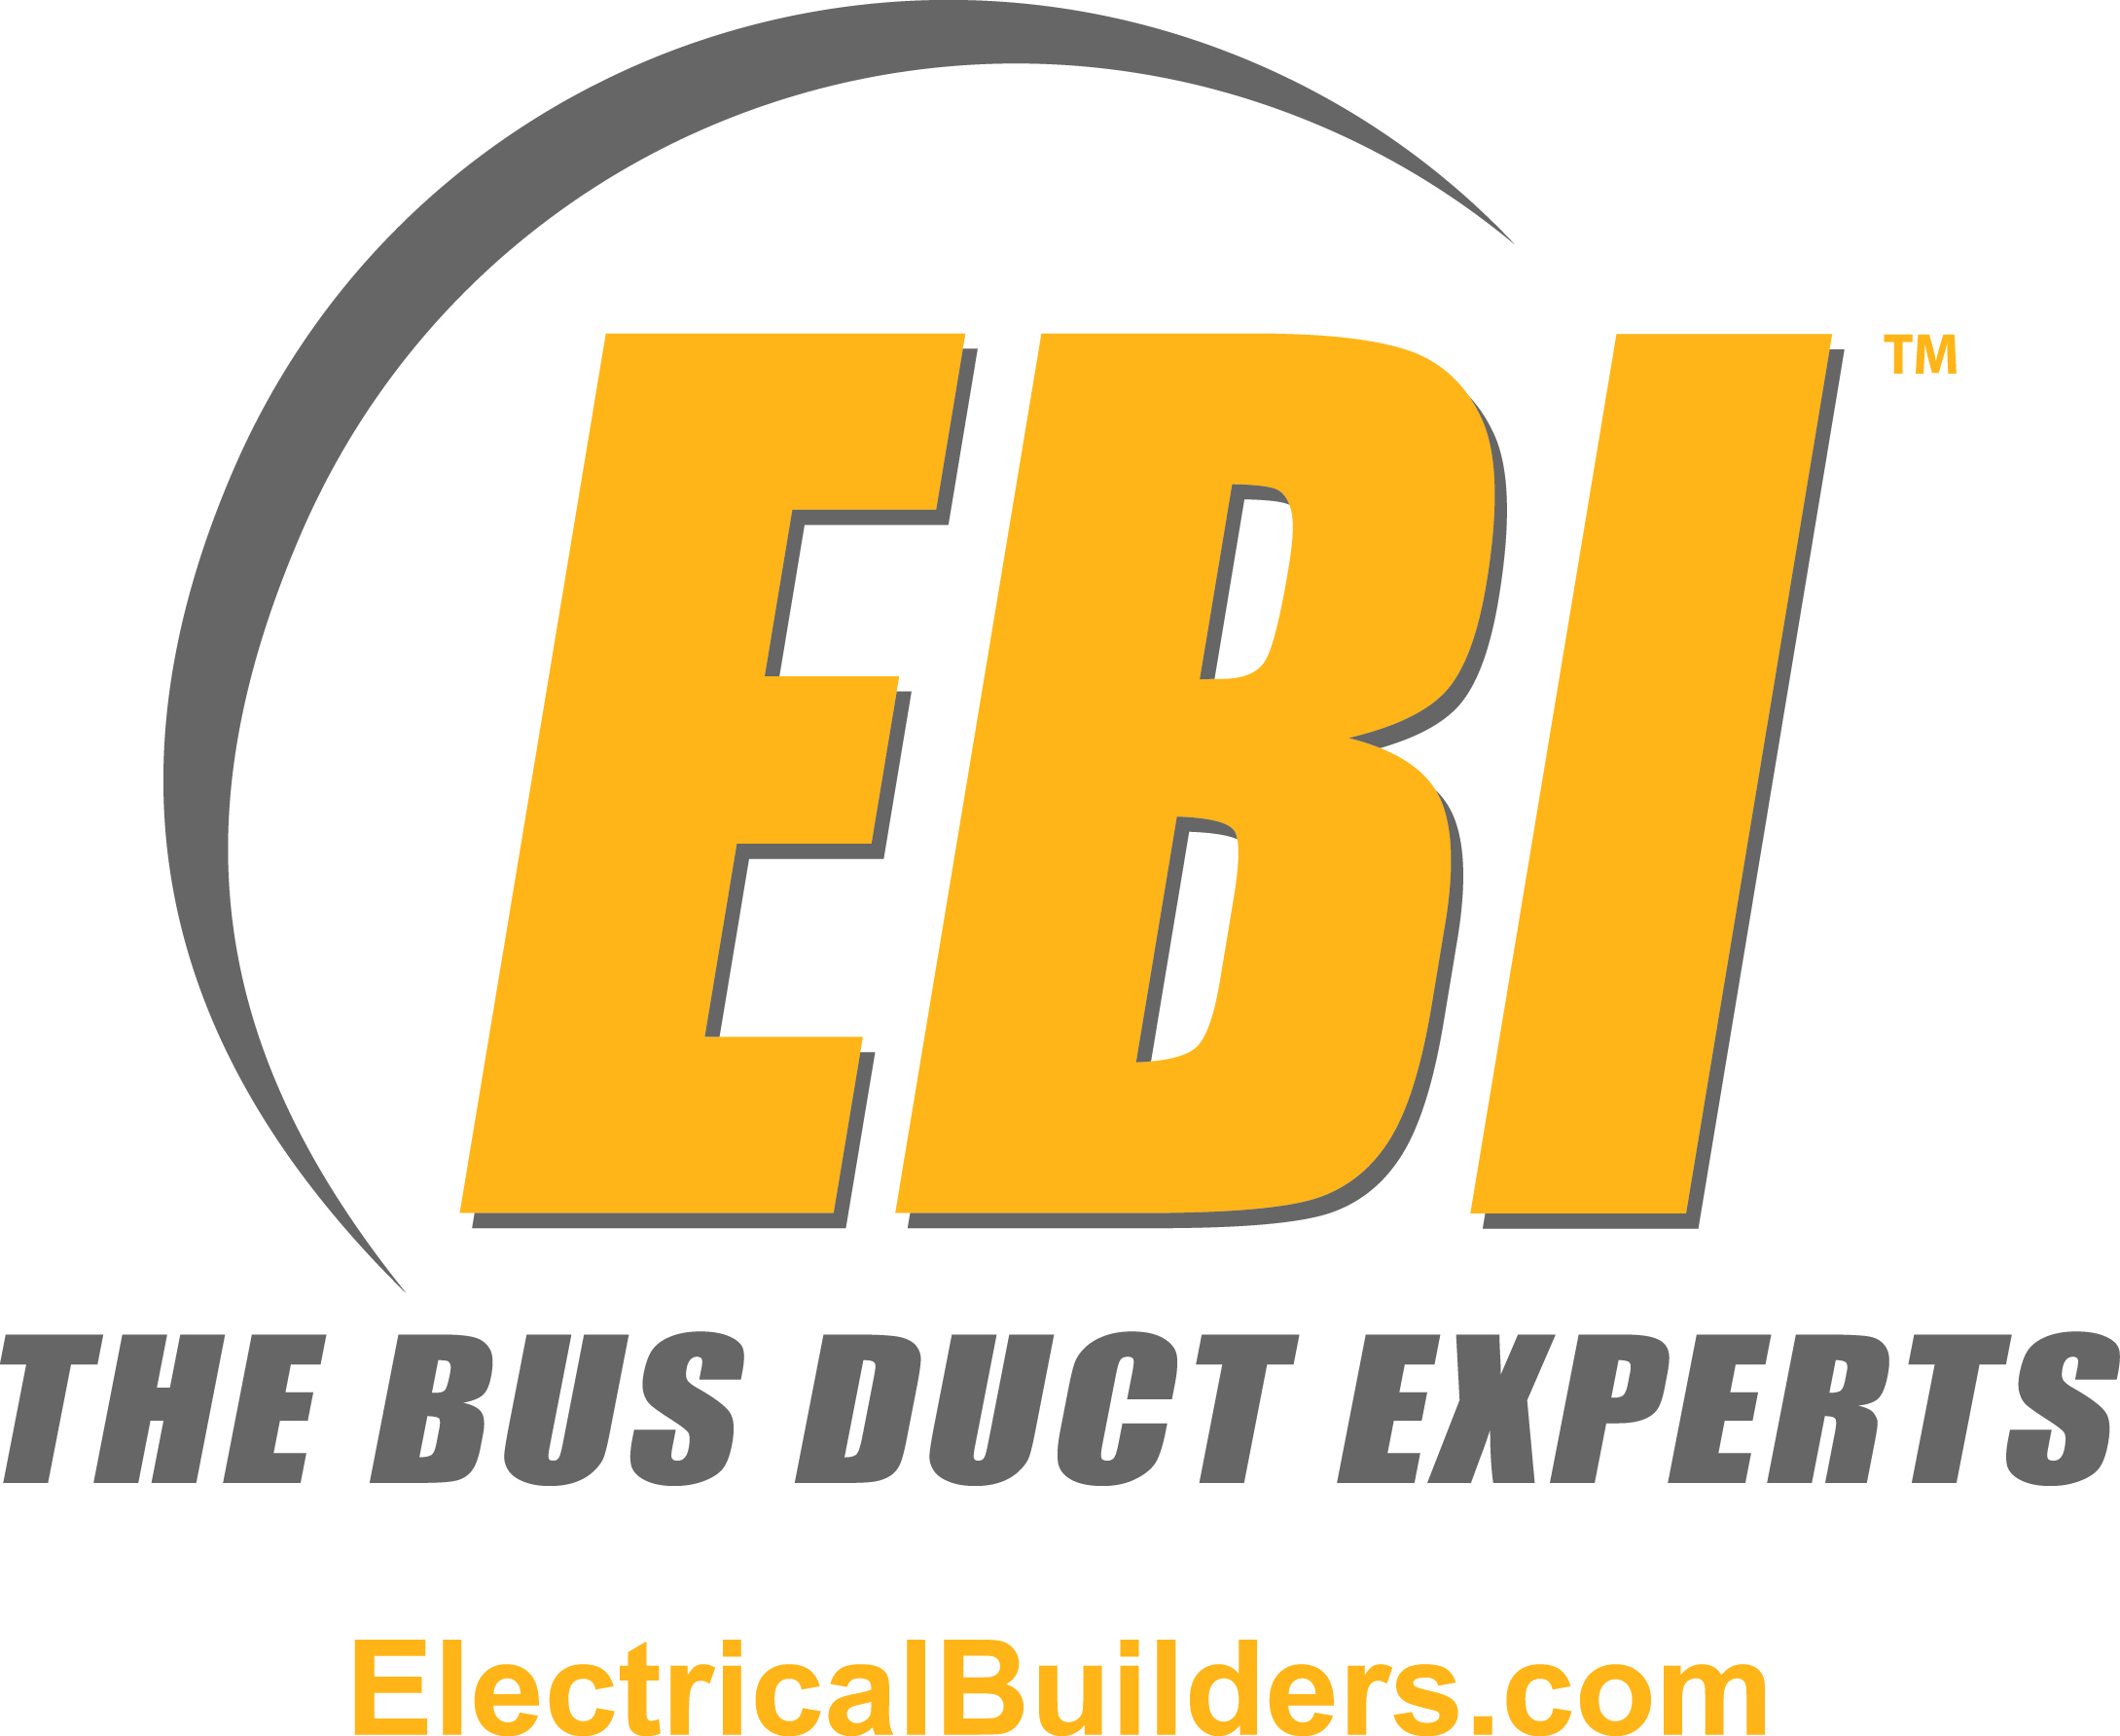 Electrical Builders, Inc. (EBI) at Electricity Forum